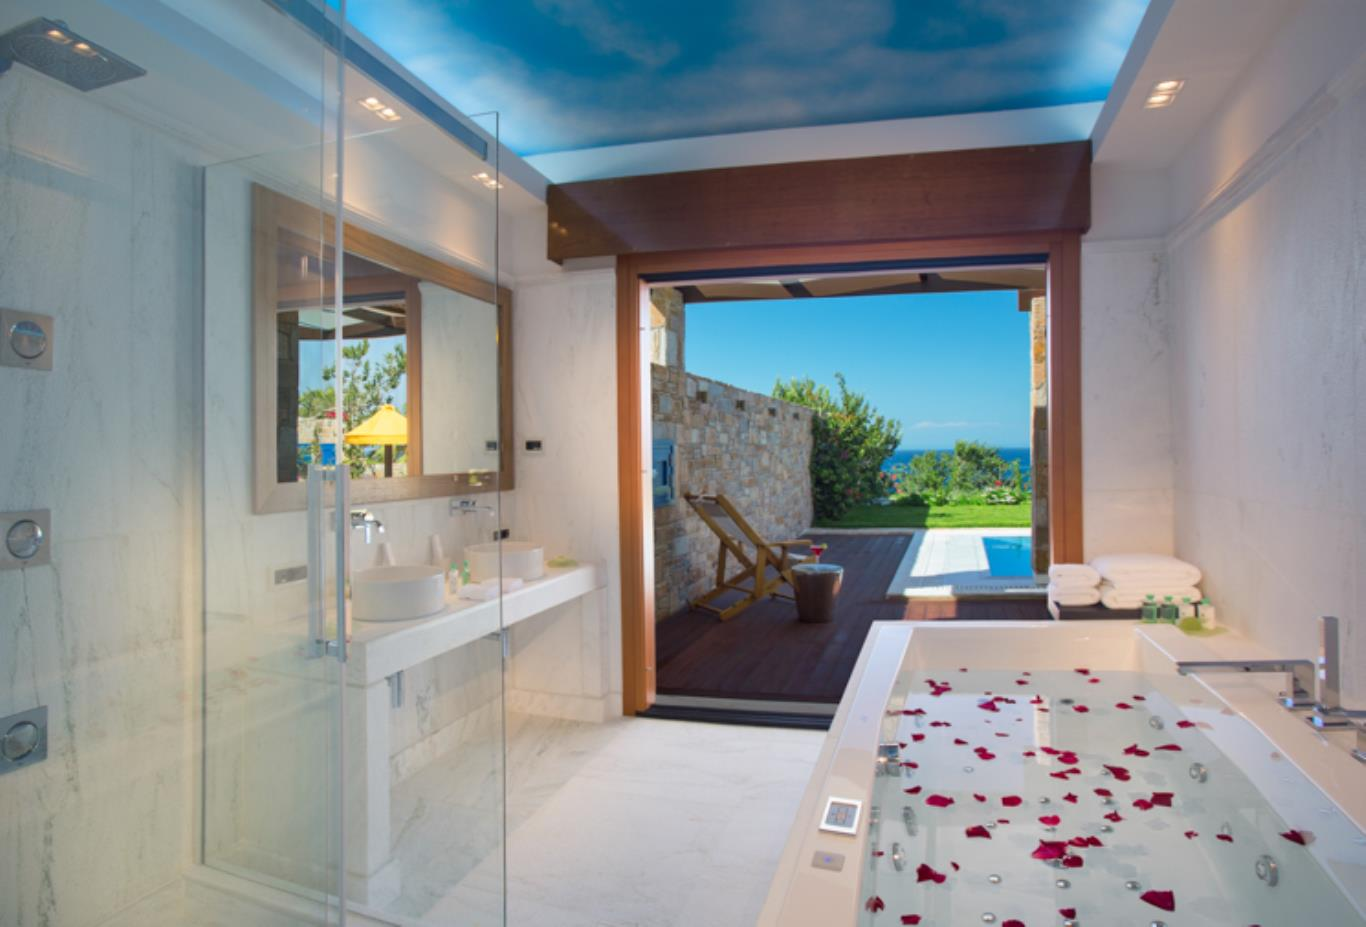 One Royal Spa Villa bathroom